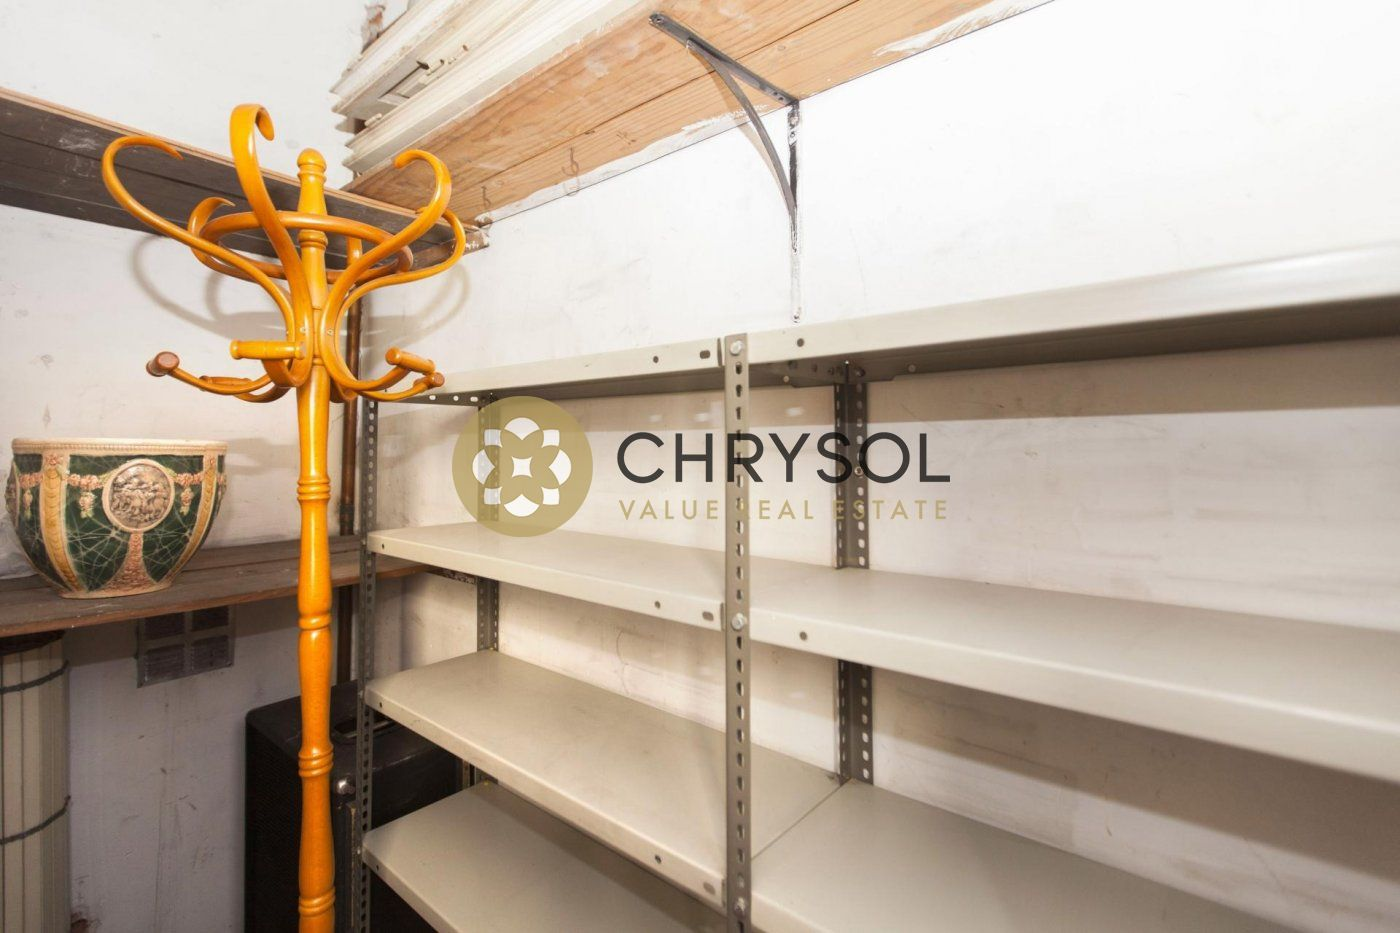 Photogallery - 26 - Chrysol Value